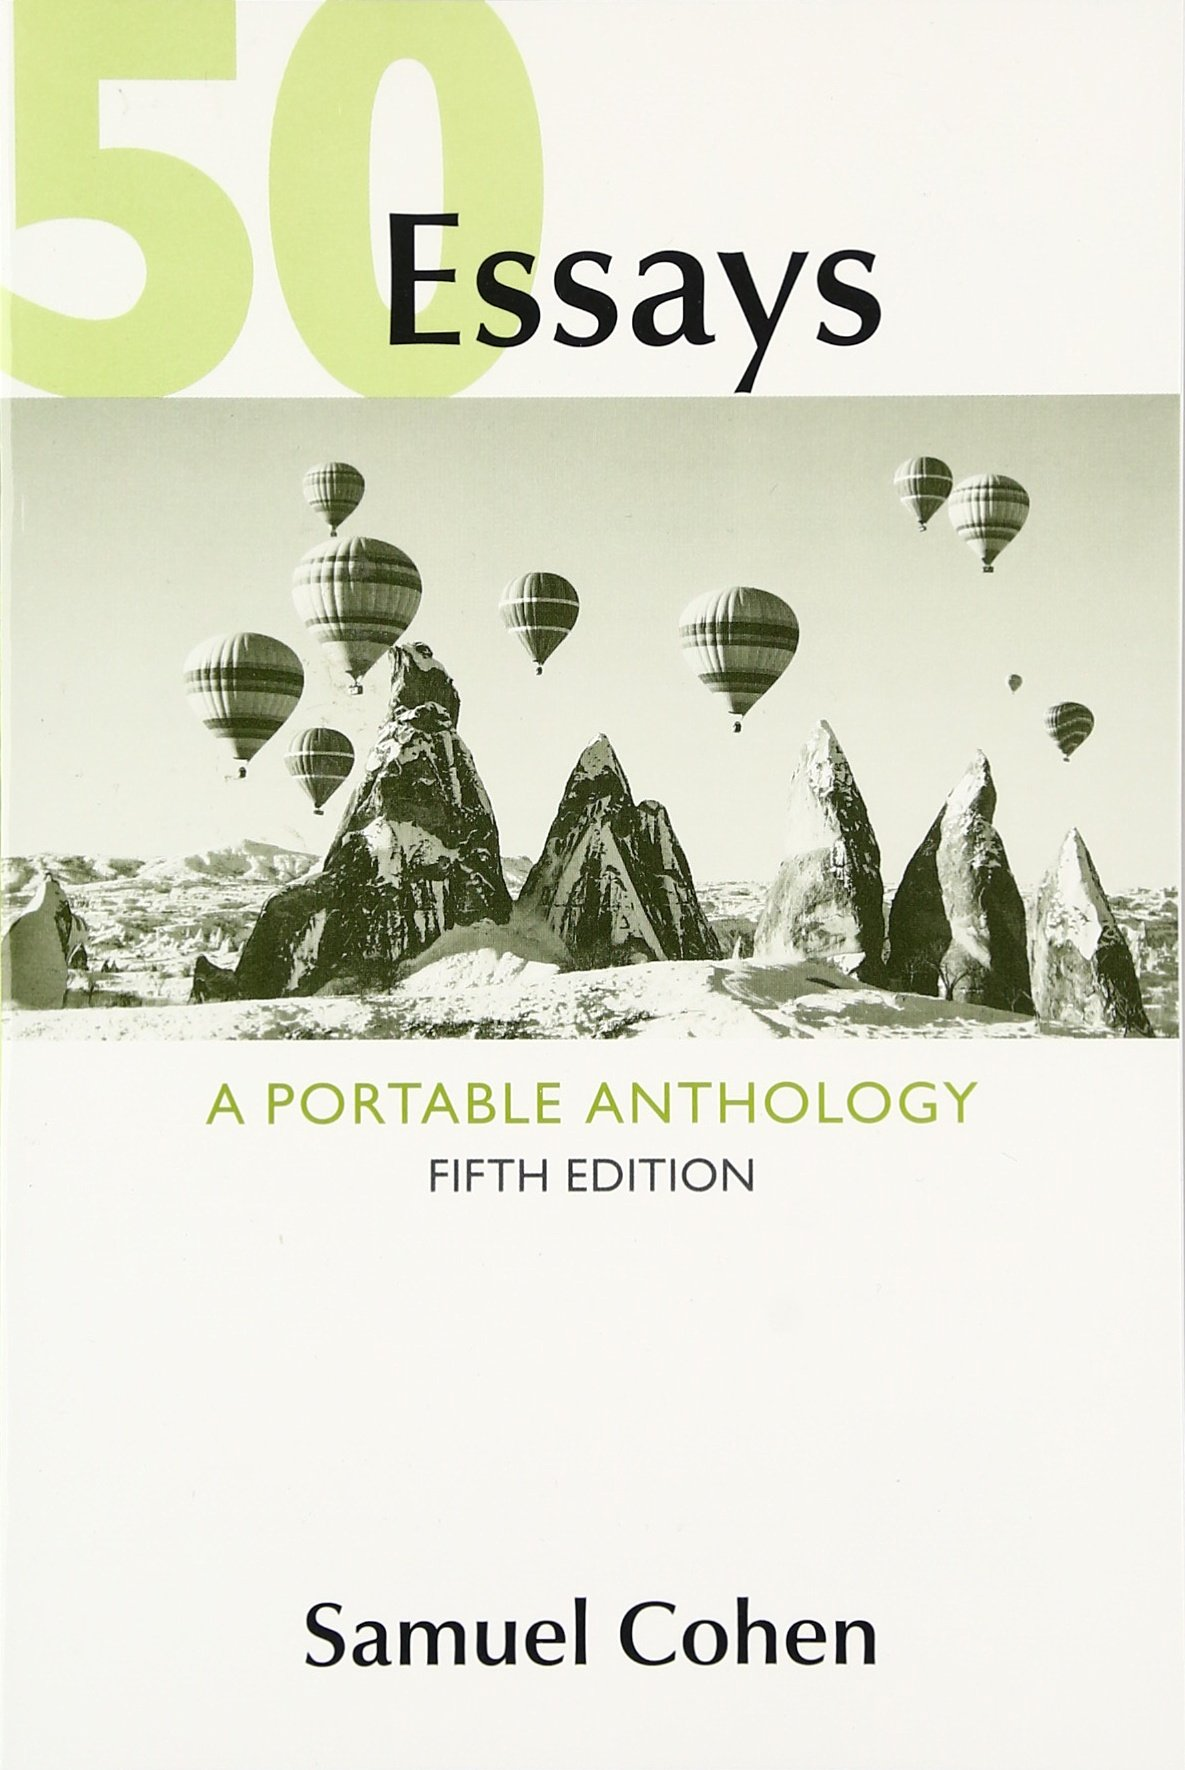 50 Essays: A Portable Anthology by Bedford/St. Martin's